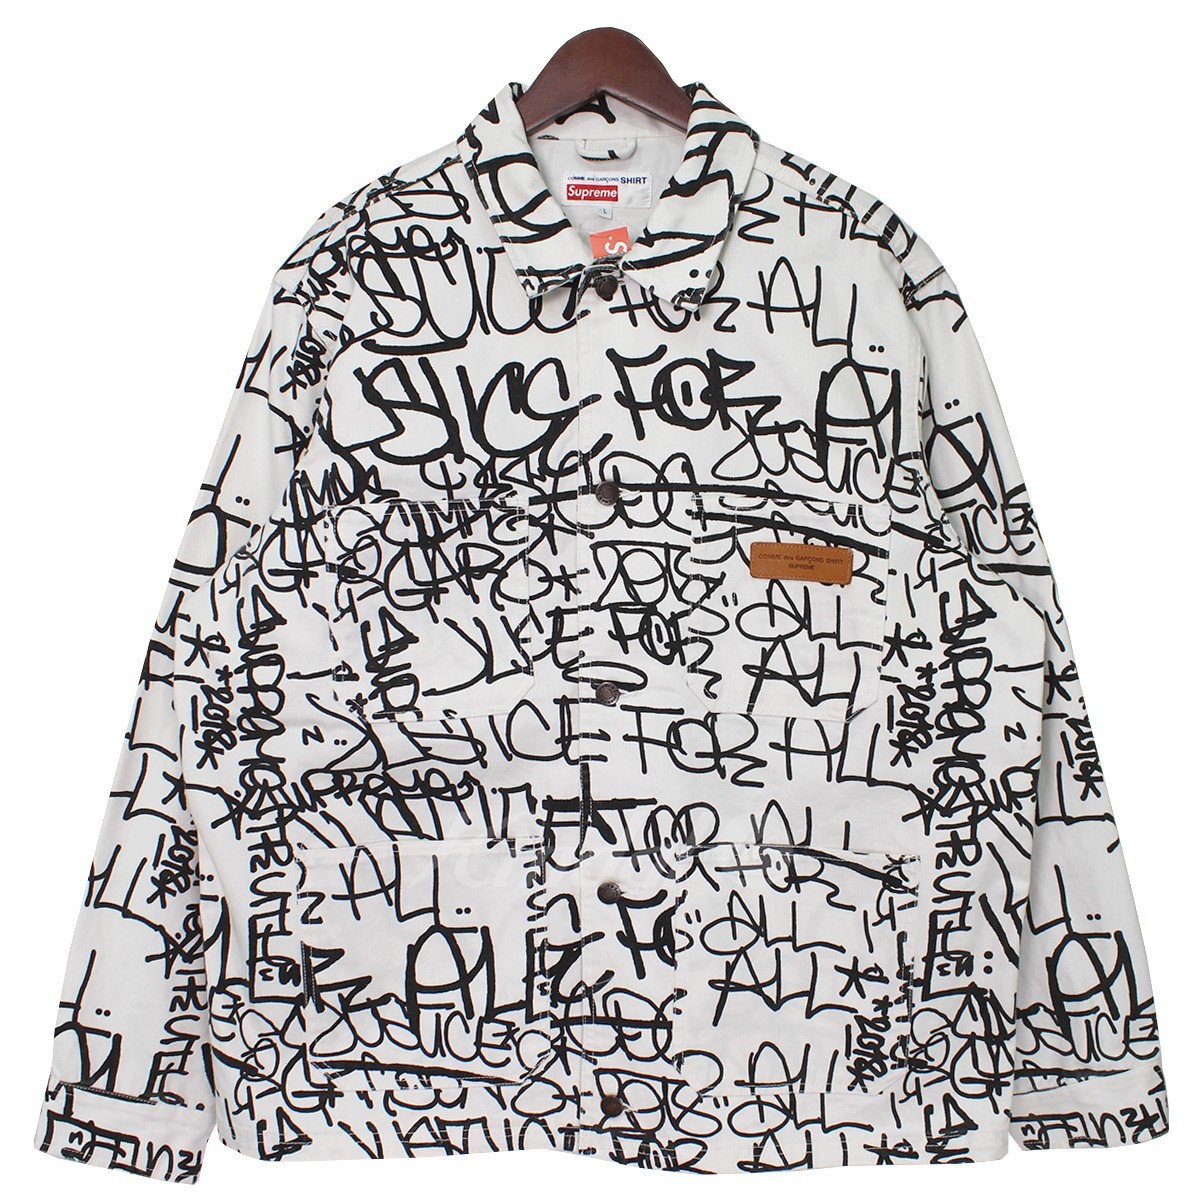 【中古】Supreme × COMME des GARCONS SHIRT 18AW Printed Canvas Chore Coat 総柄キャンバスカバーオール 【送料無料】 【008487】 【KIND1551】